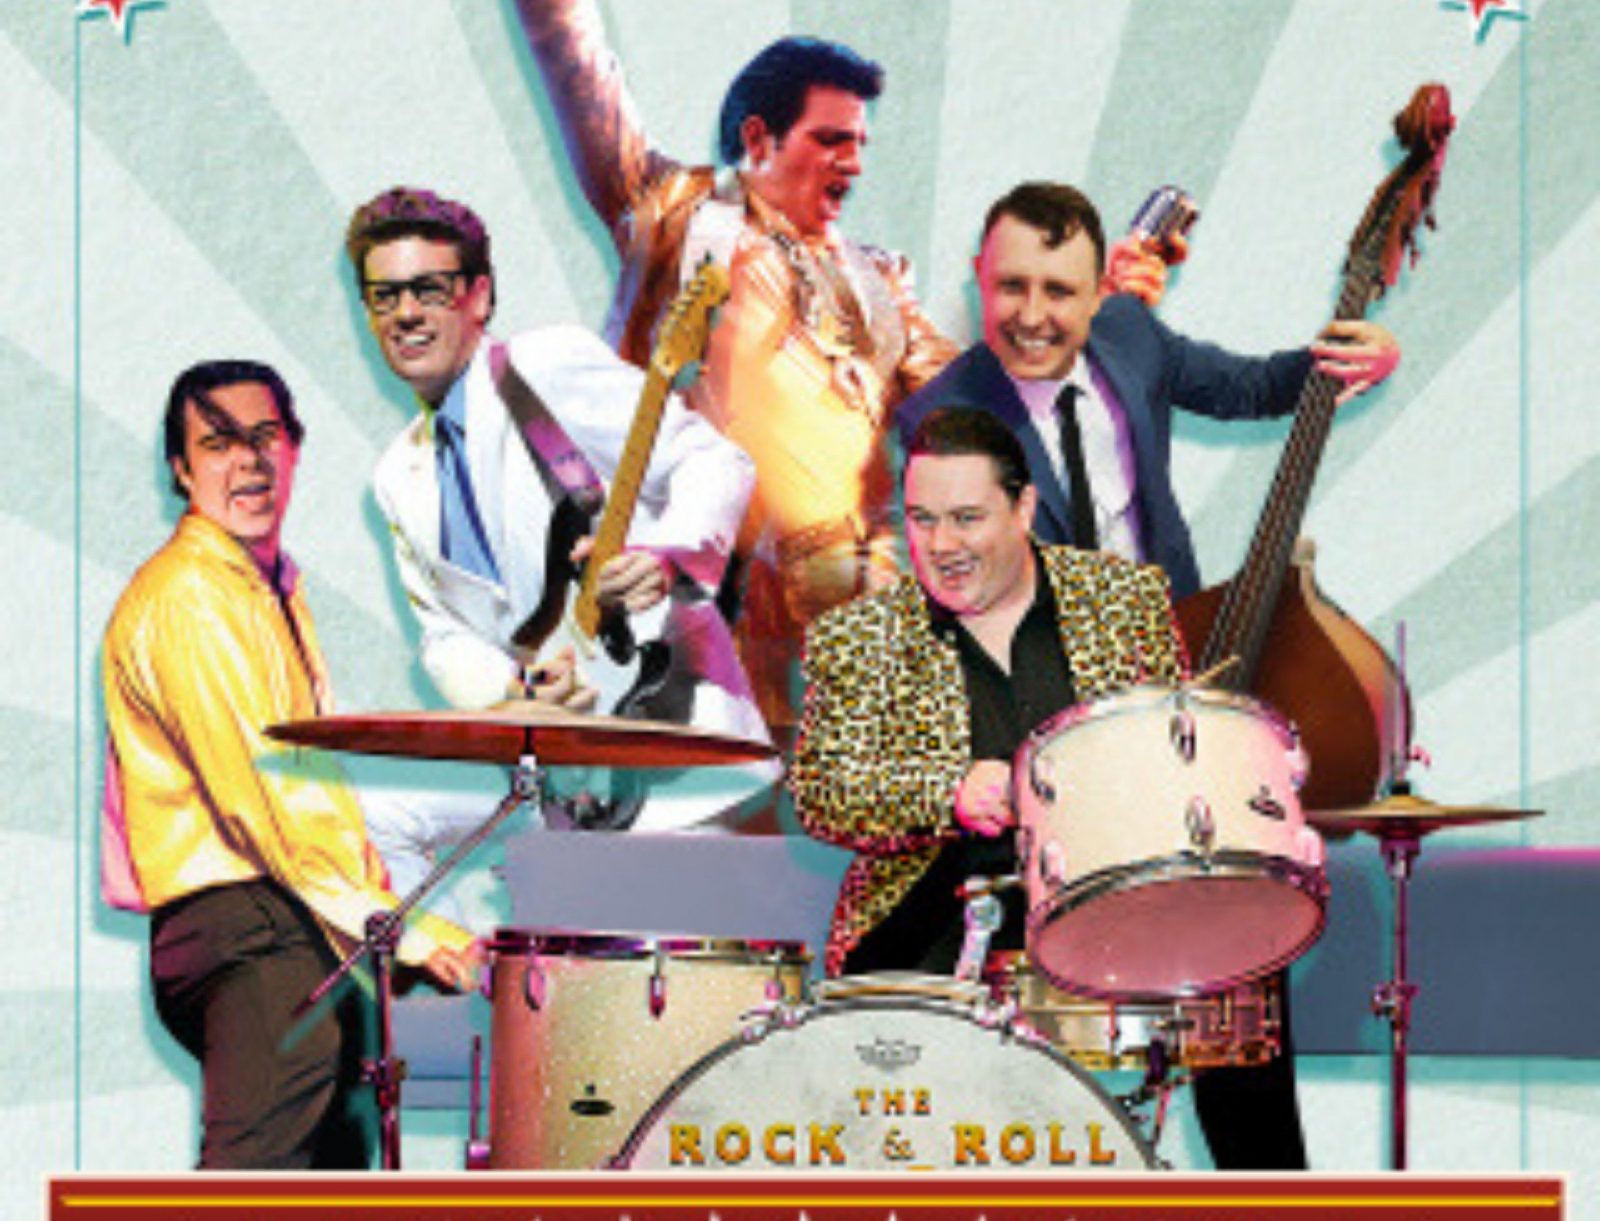 Stars of the rock and roll